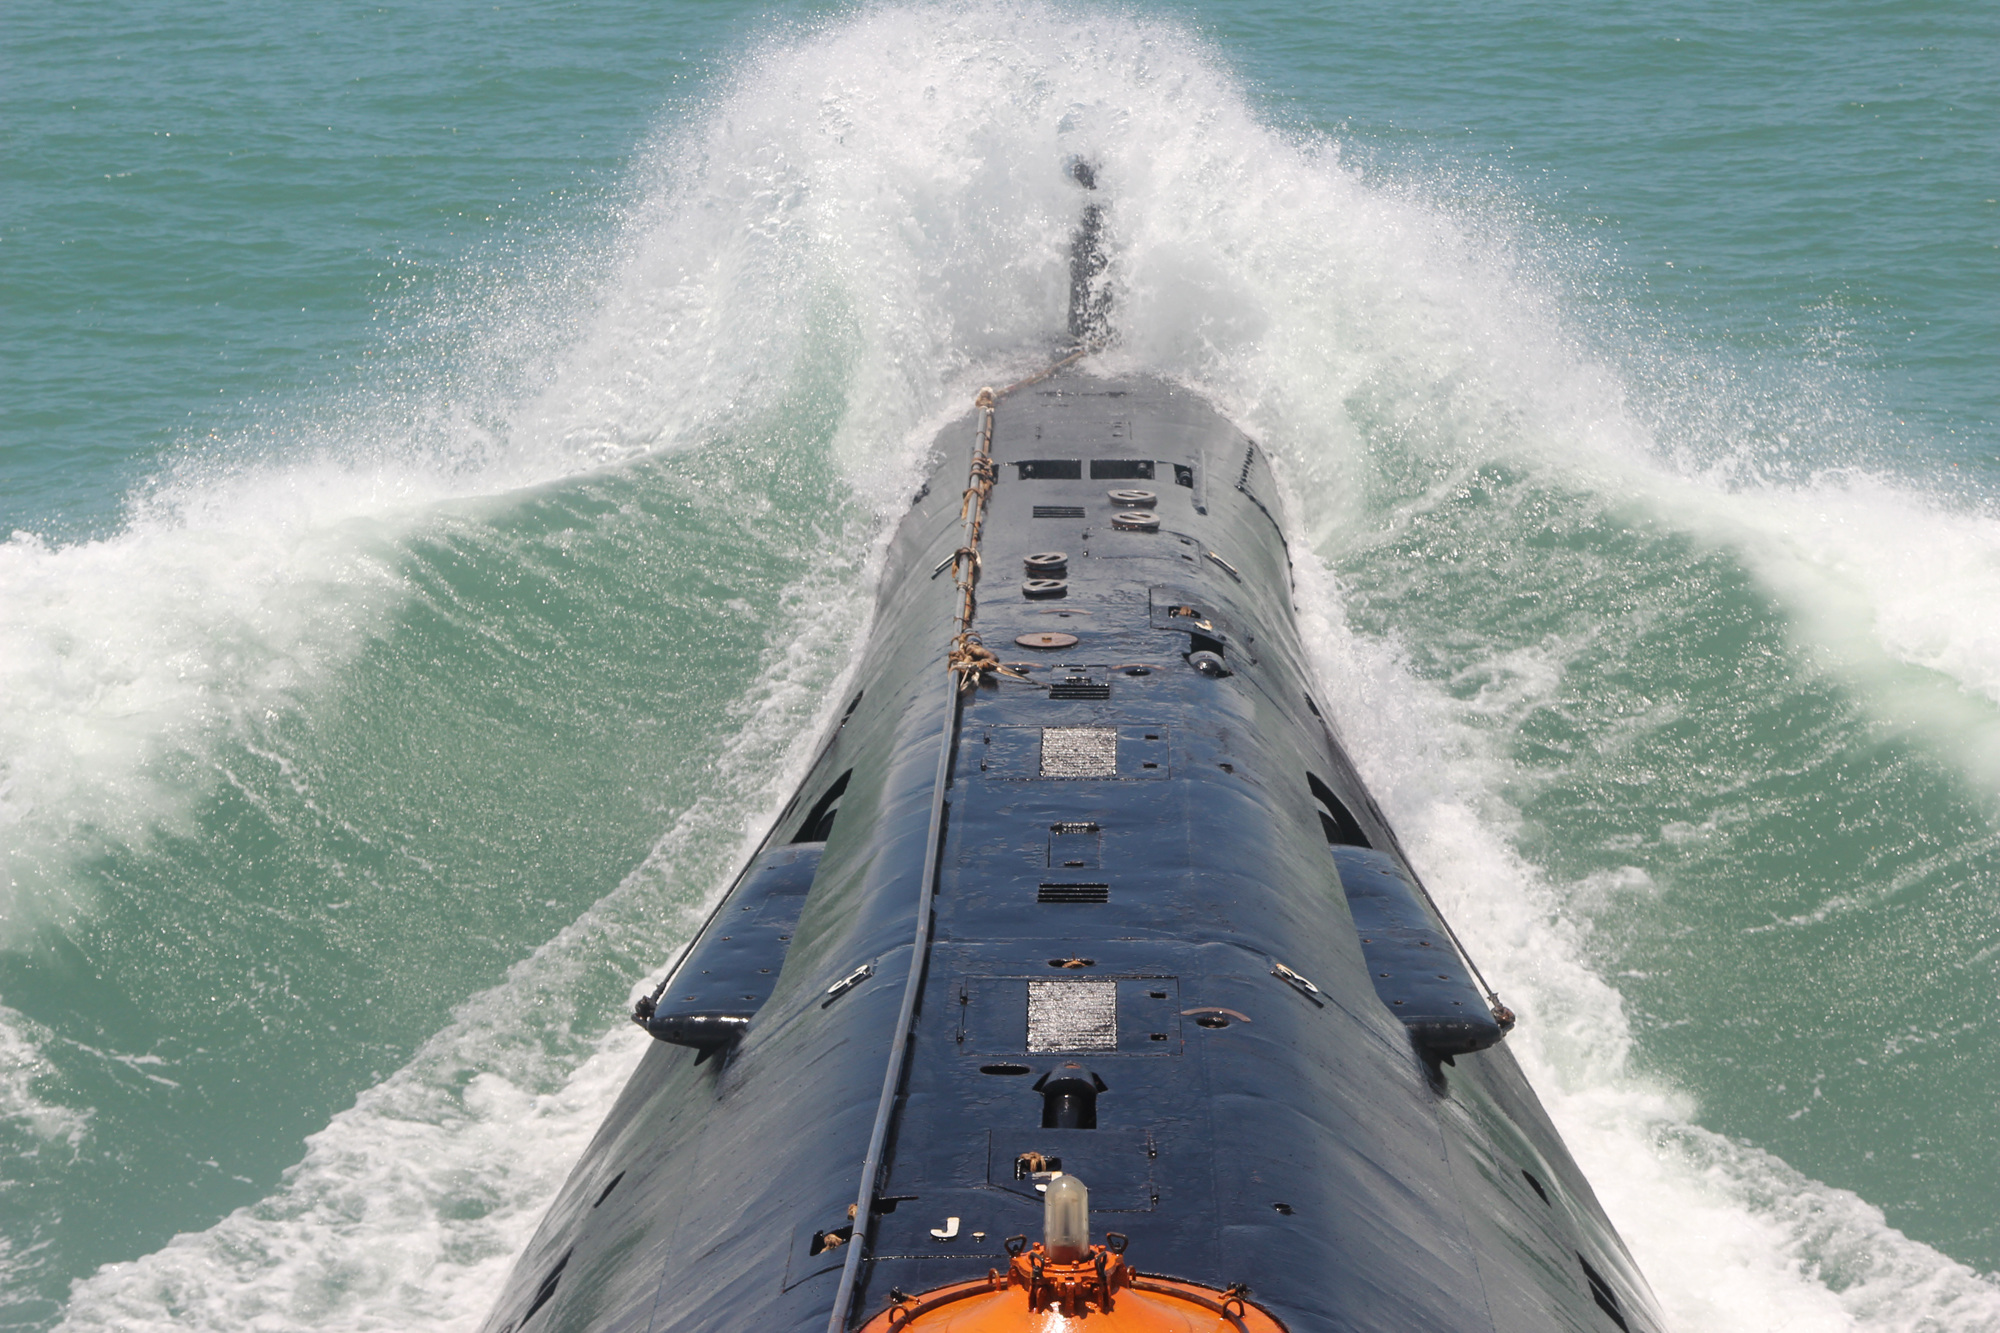 PLA Navy's submarine force conducts training